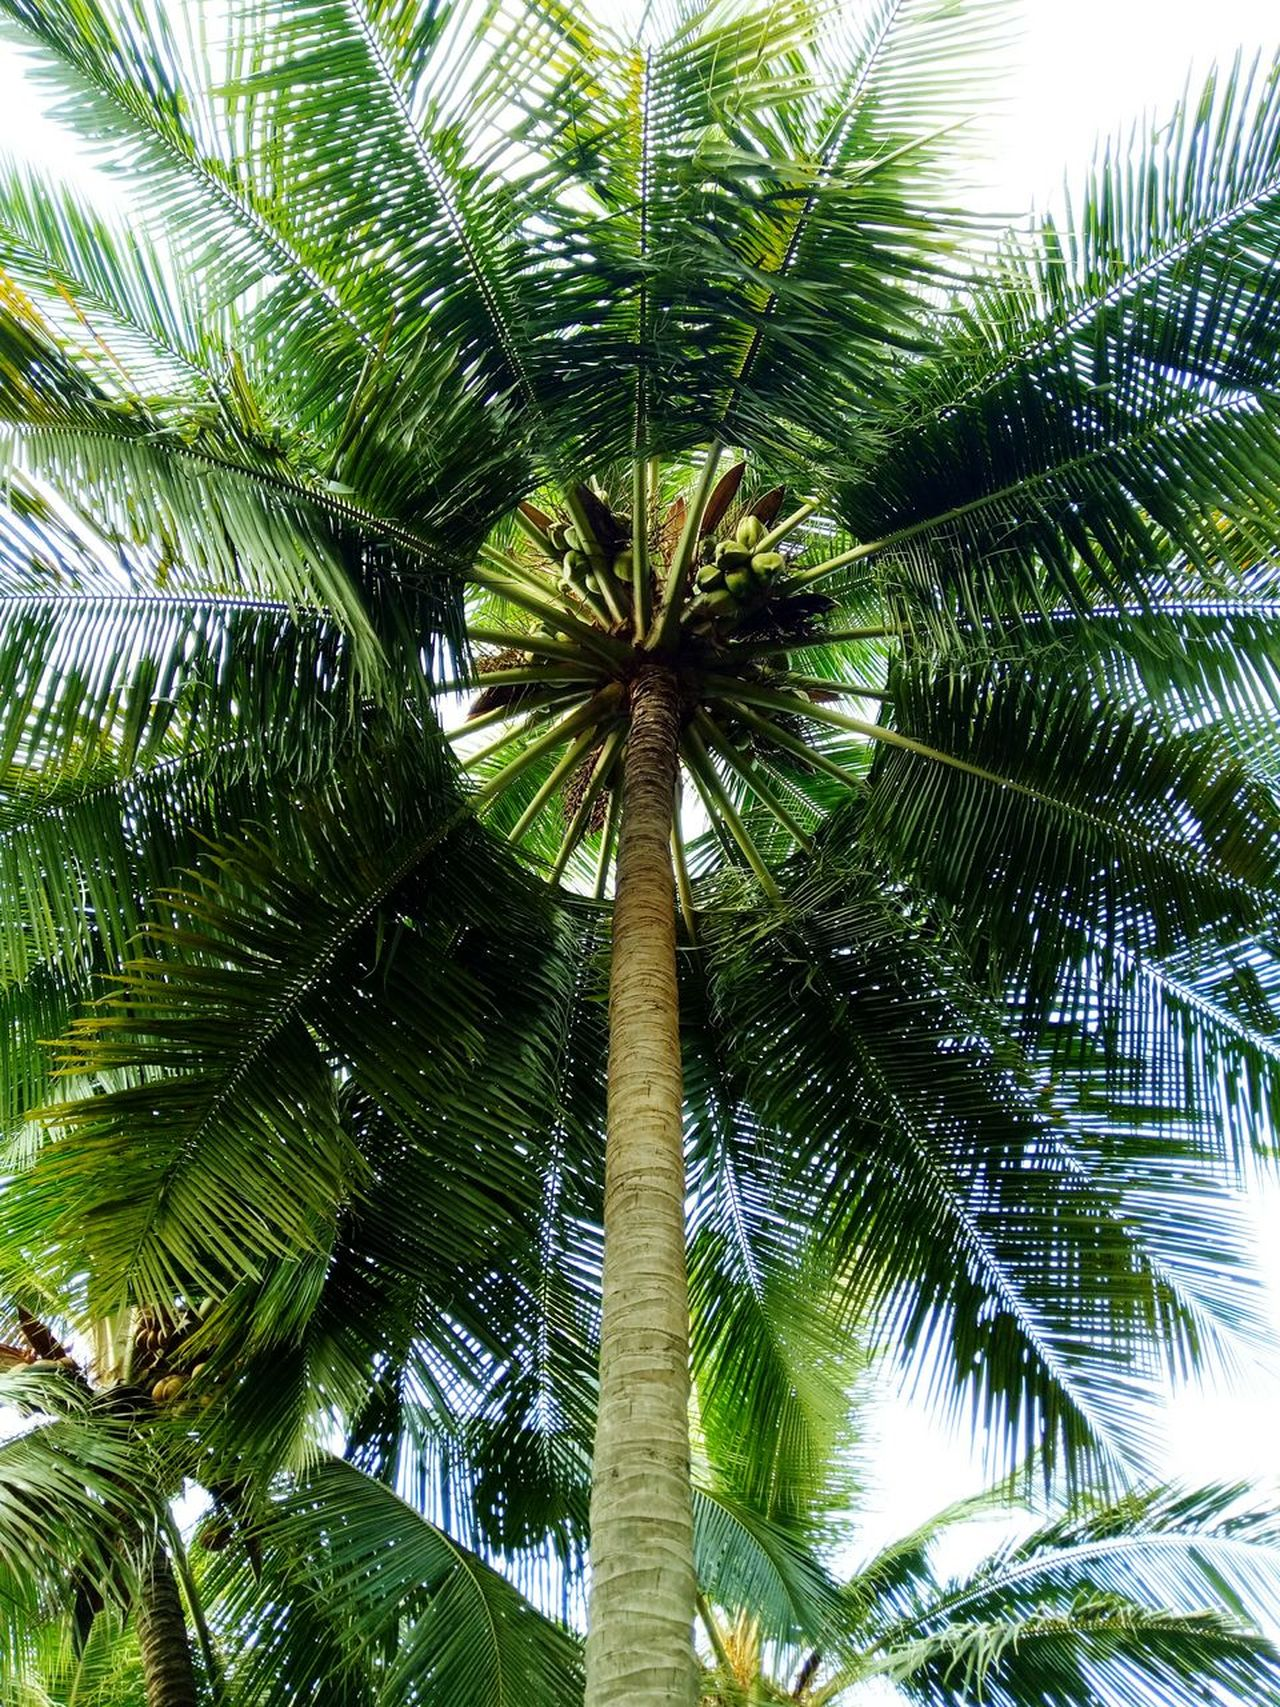 Low Angle View Growth Tree Palm Tree Nature Green Color Day No People Sky Outdoors Beauty In Nature Treetop Tree Topper Treetastic Treelovers Trees And Sky Leaves🌿 Leaves 🍁 Coconut Trees Leaves And Sky Leaves Green Growing In Strange Places